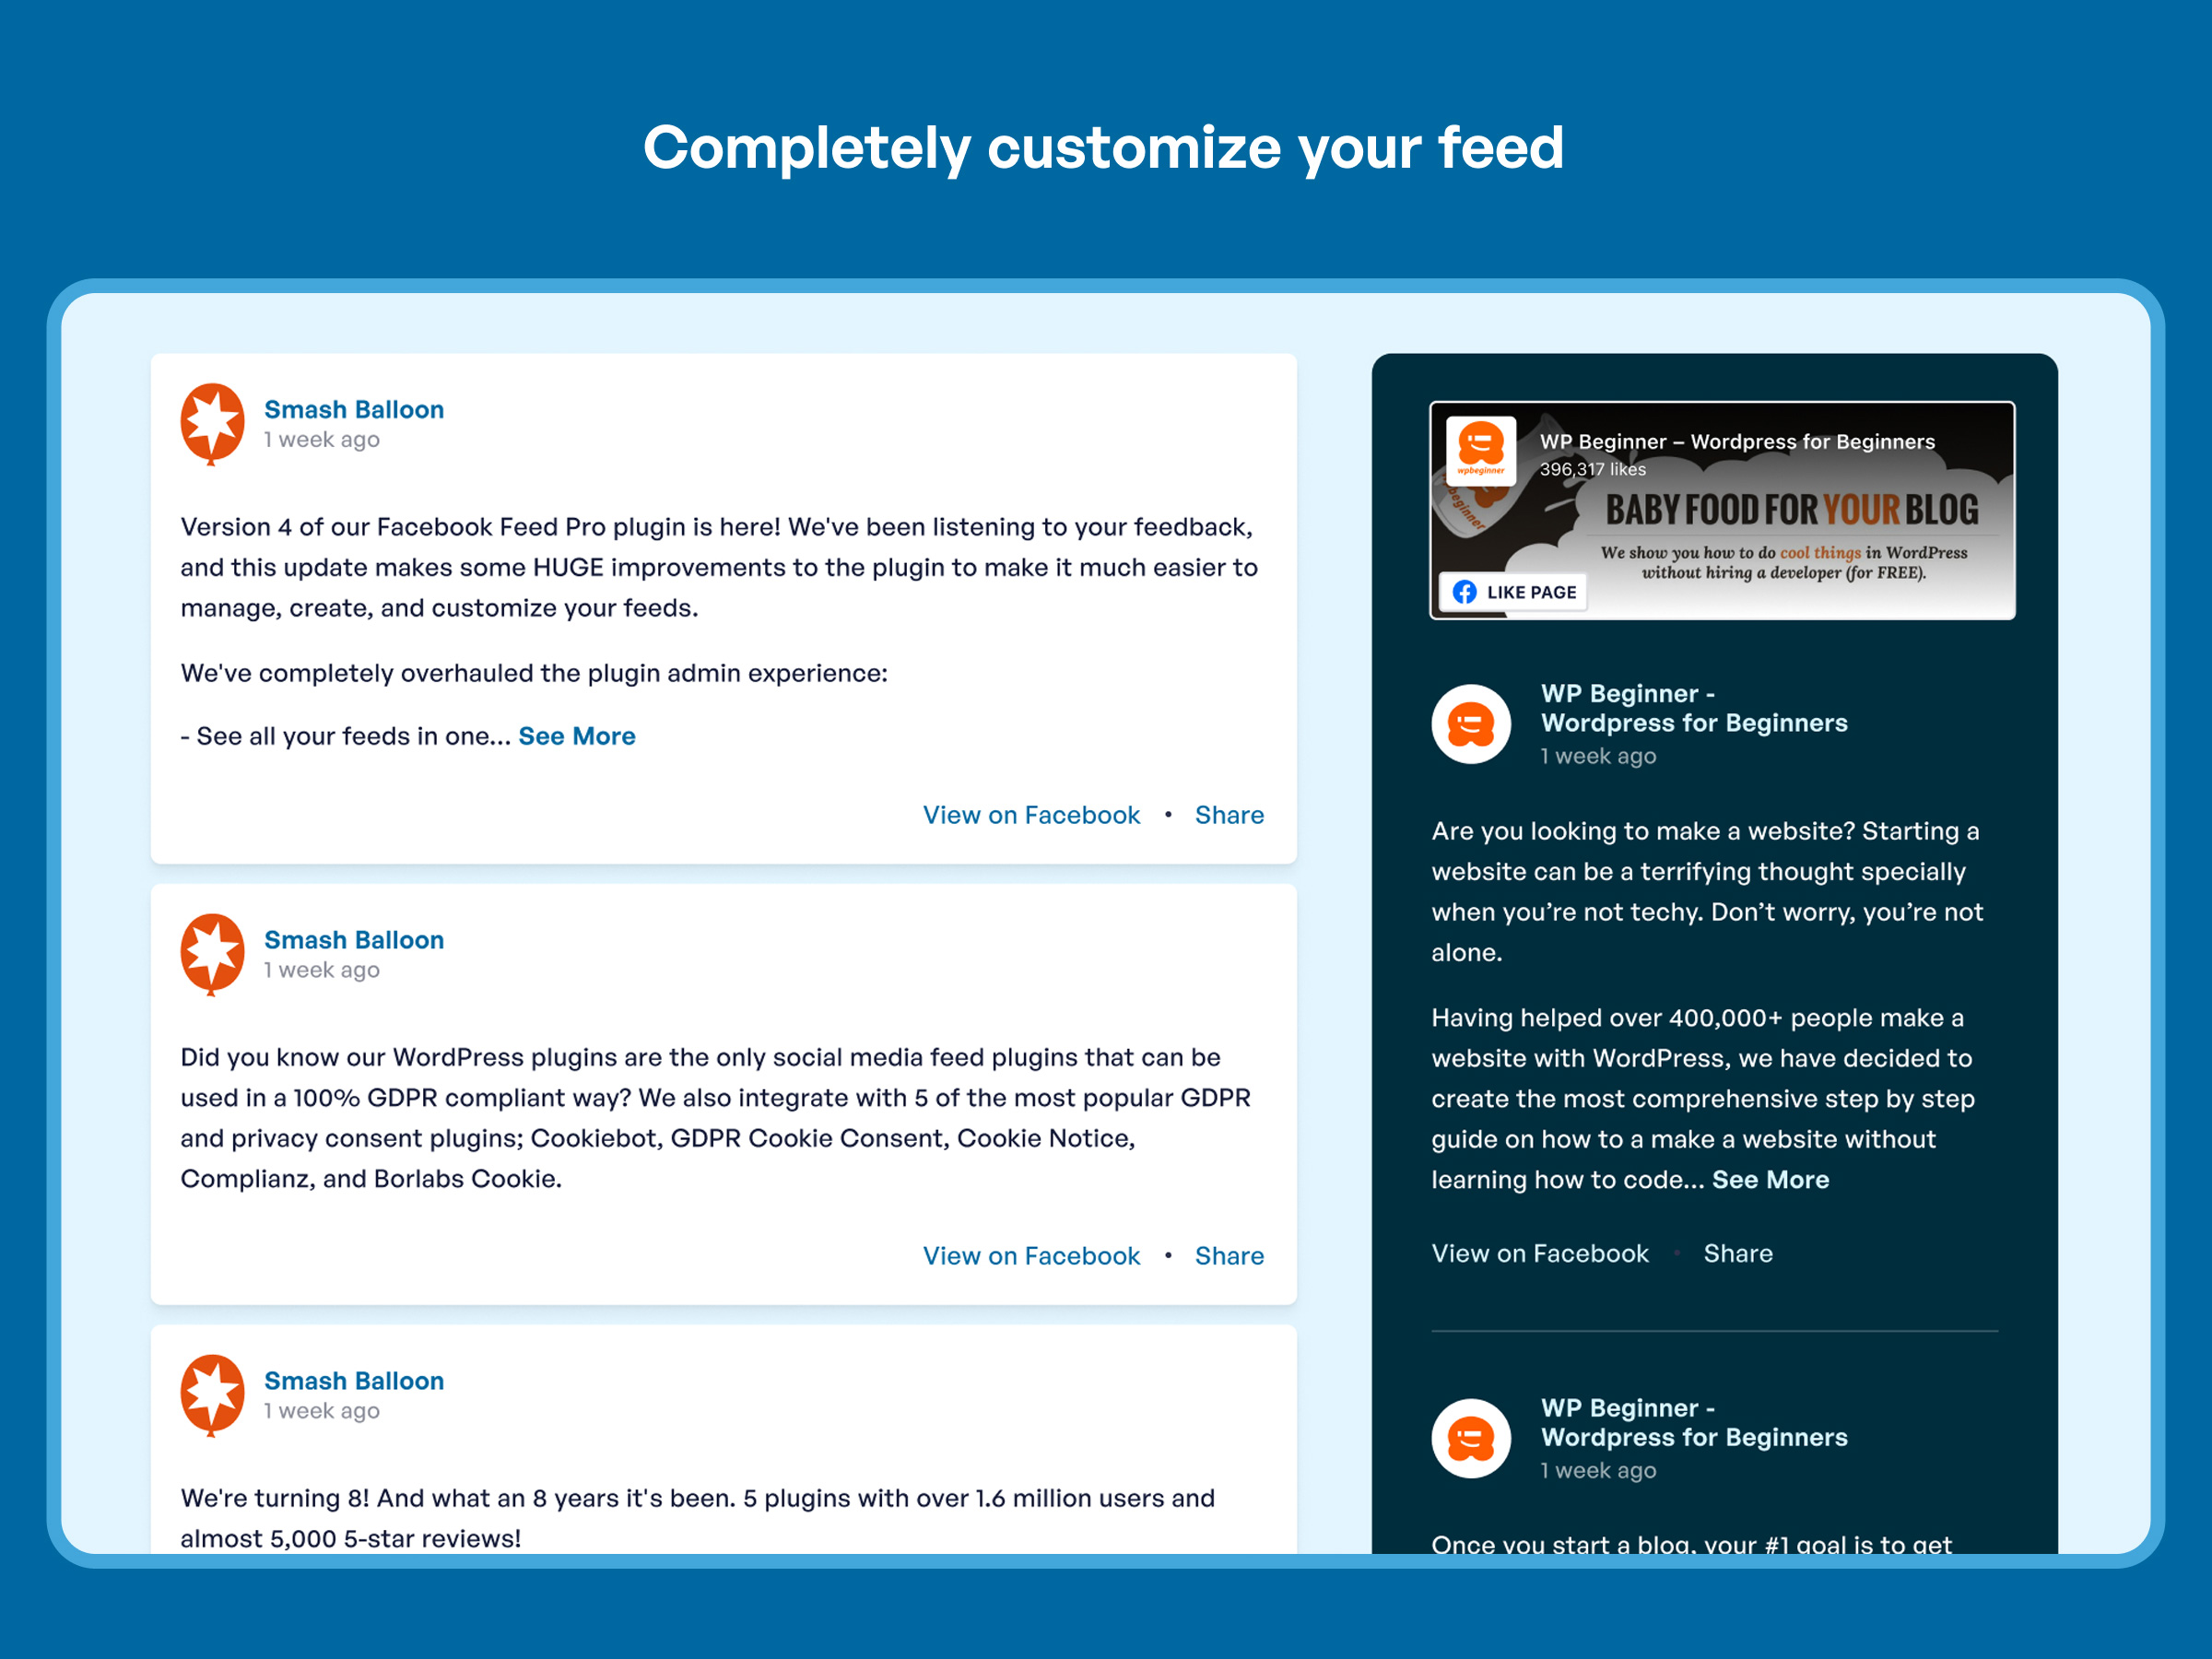 Completely customize the way your Facebook feed looks to perfectly match your site